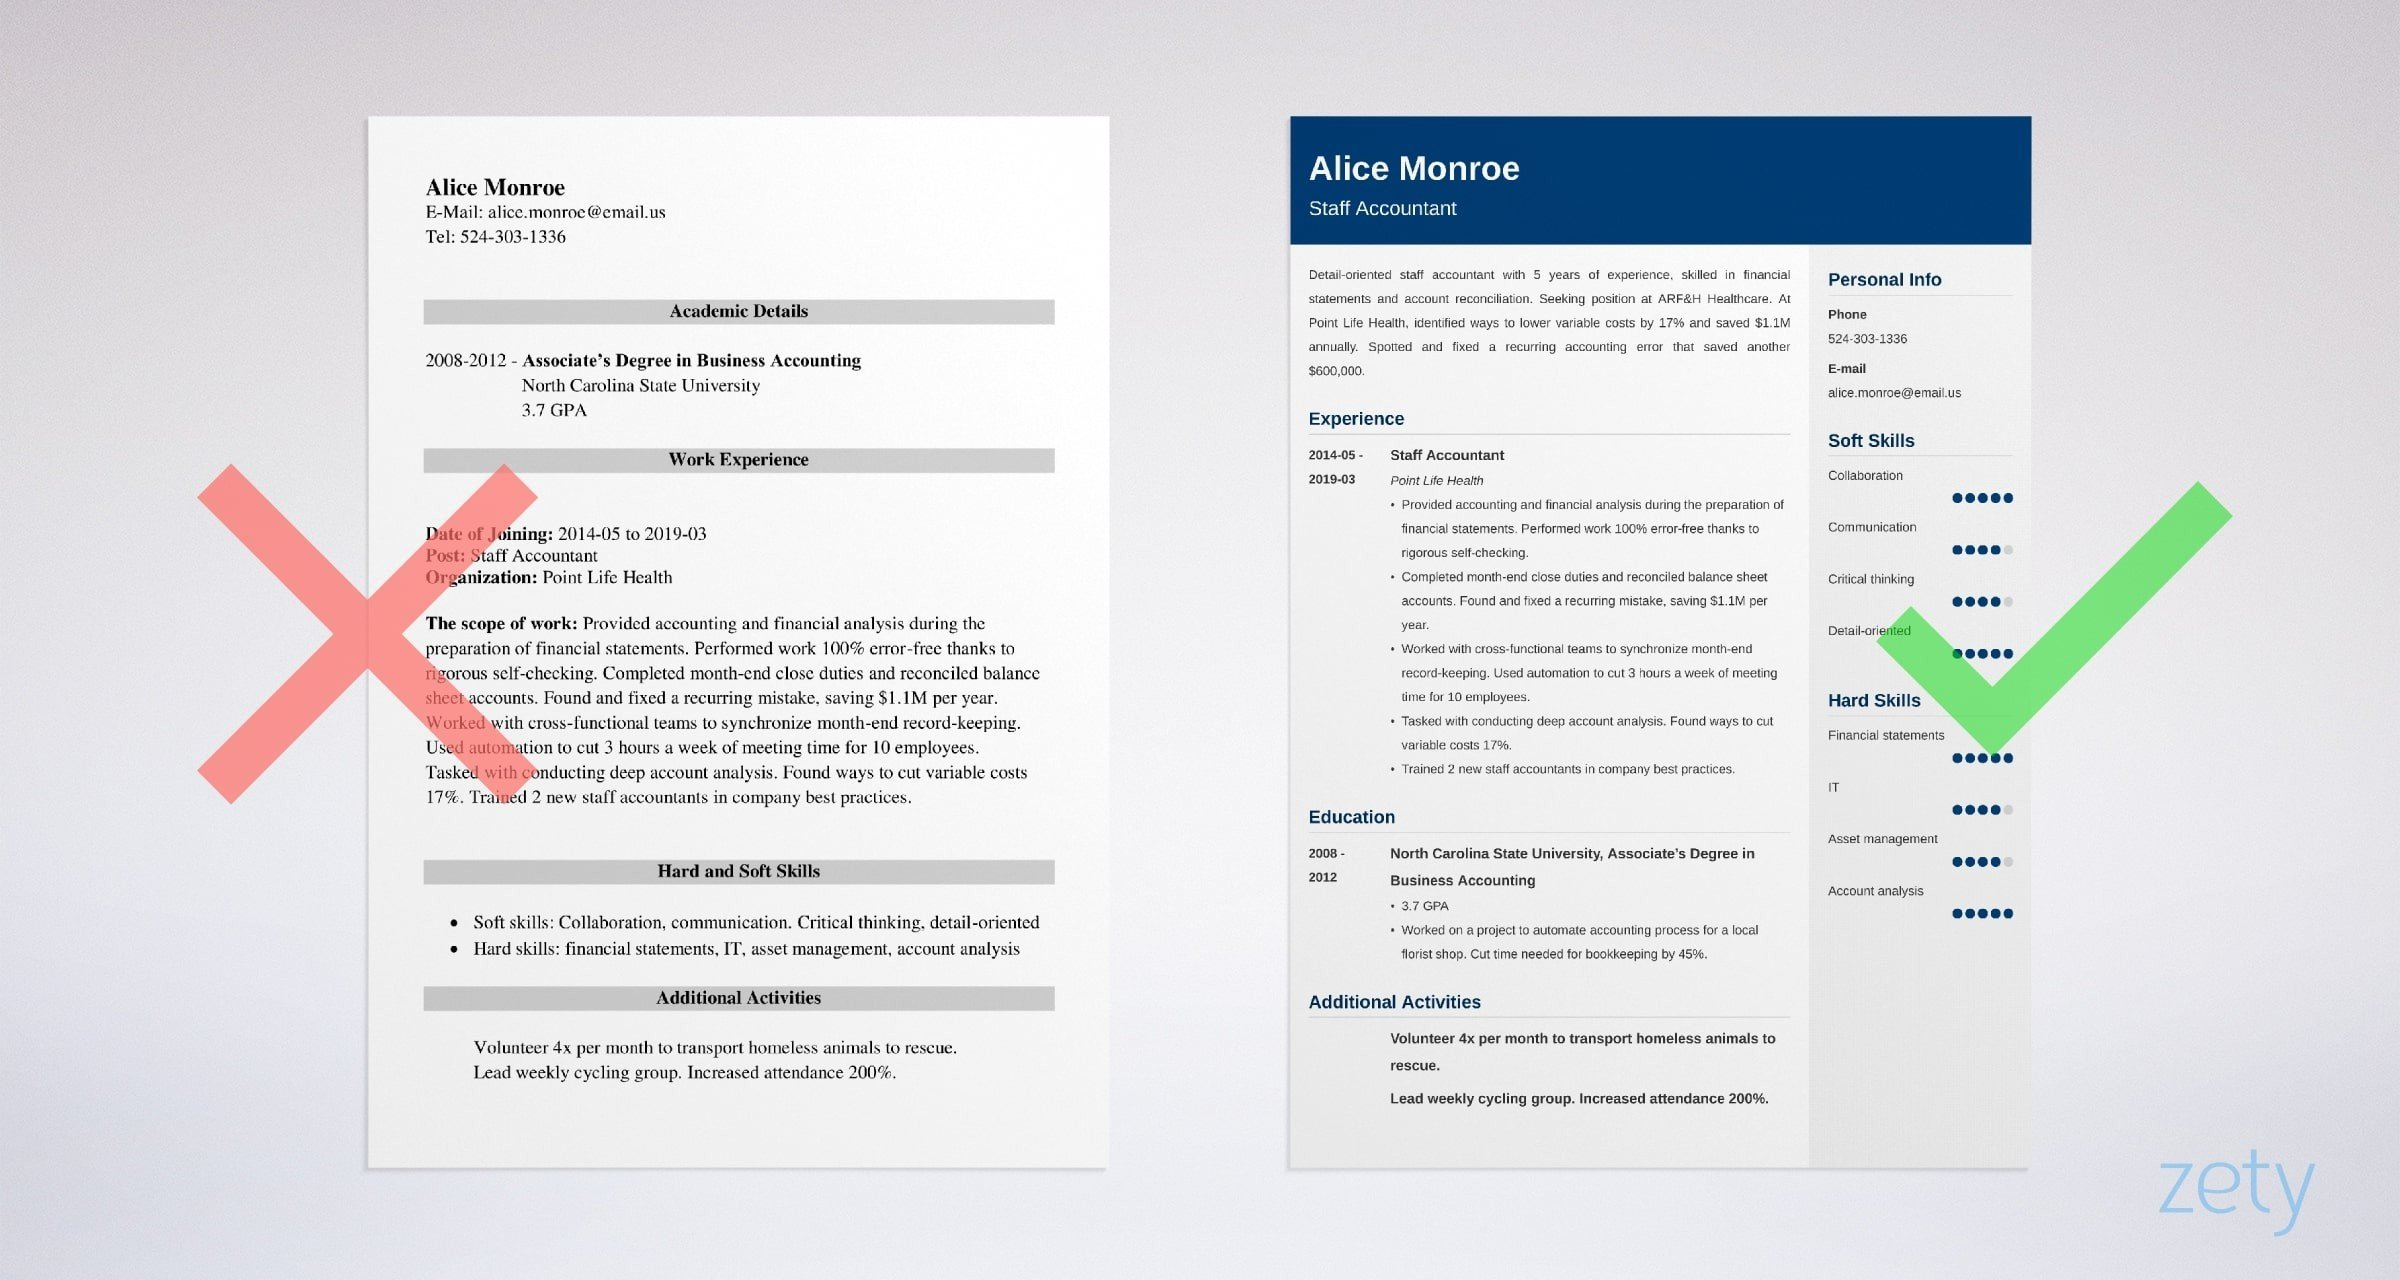 staff accountant resume sample guide examples example federal air marshal monster search Resume Staff Accountant Resume